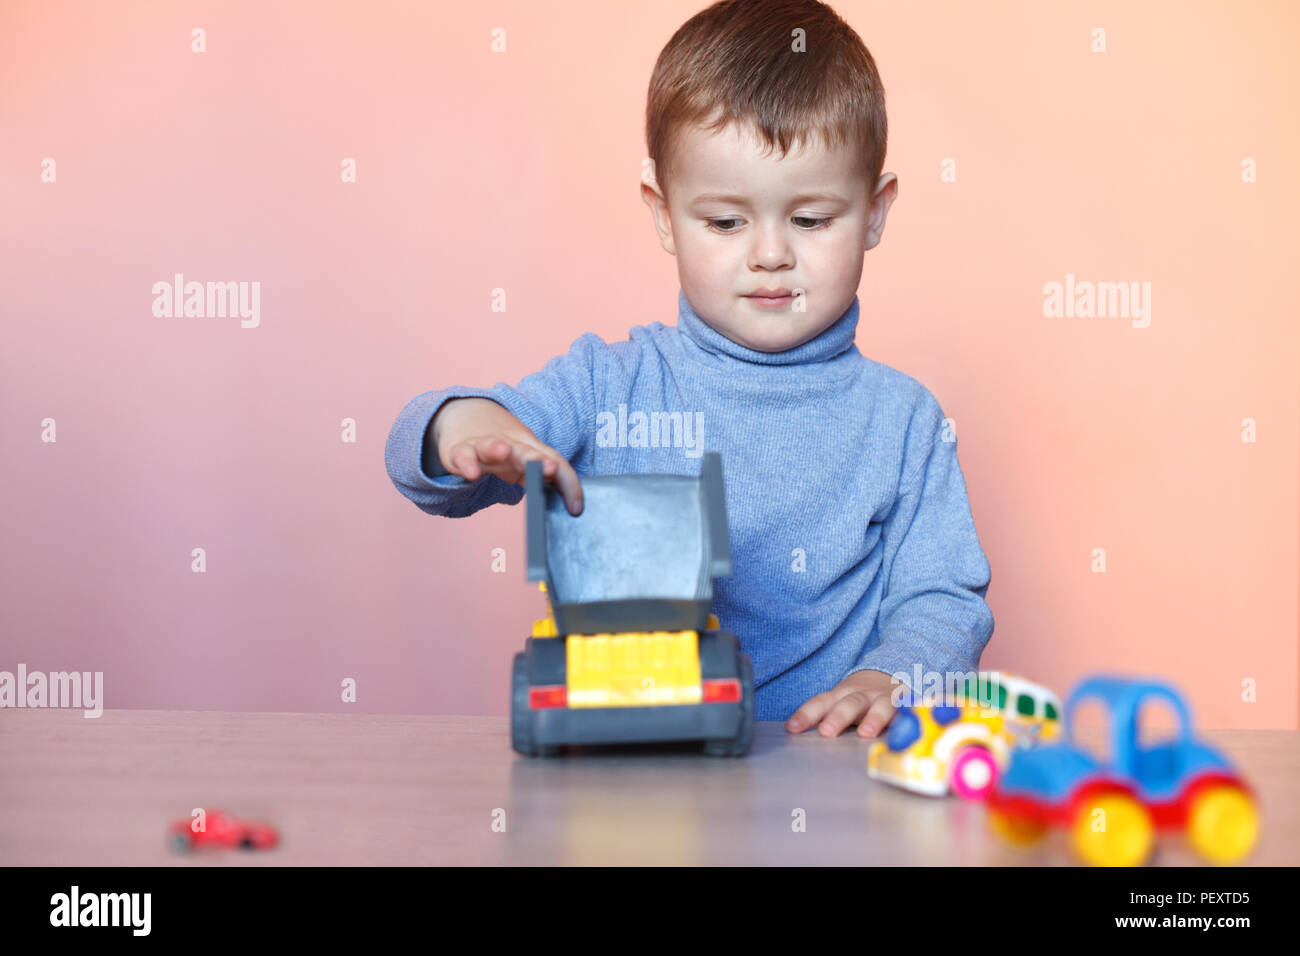 A cute little boy playing with model car collection. Toy mess in child room. - Stock Image